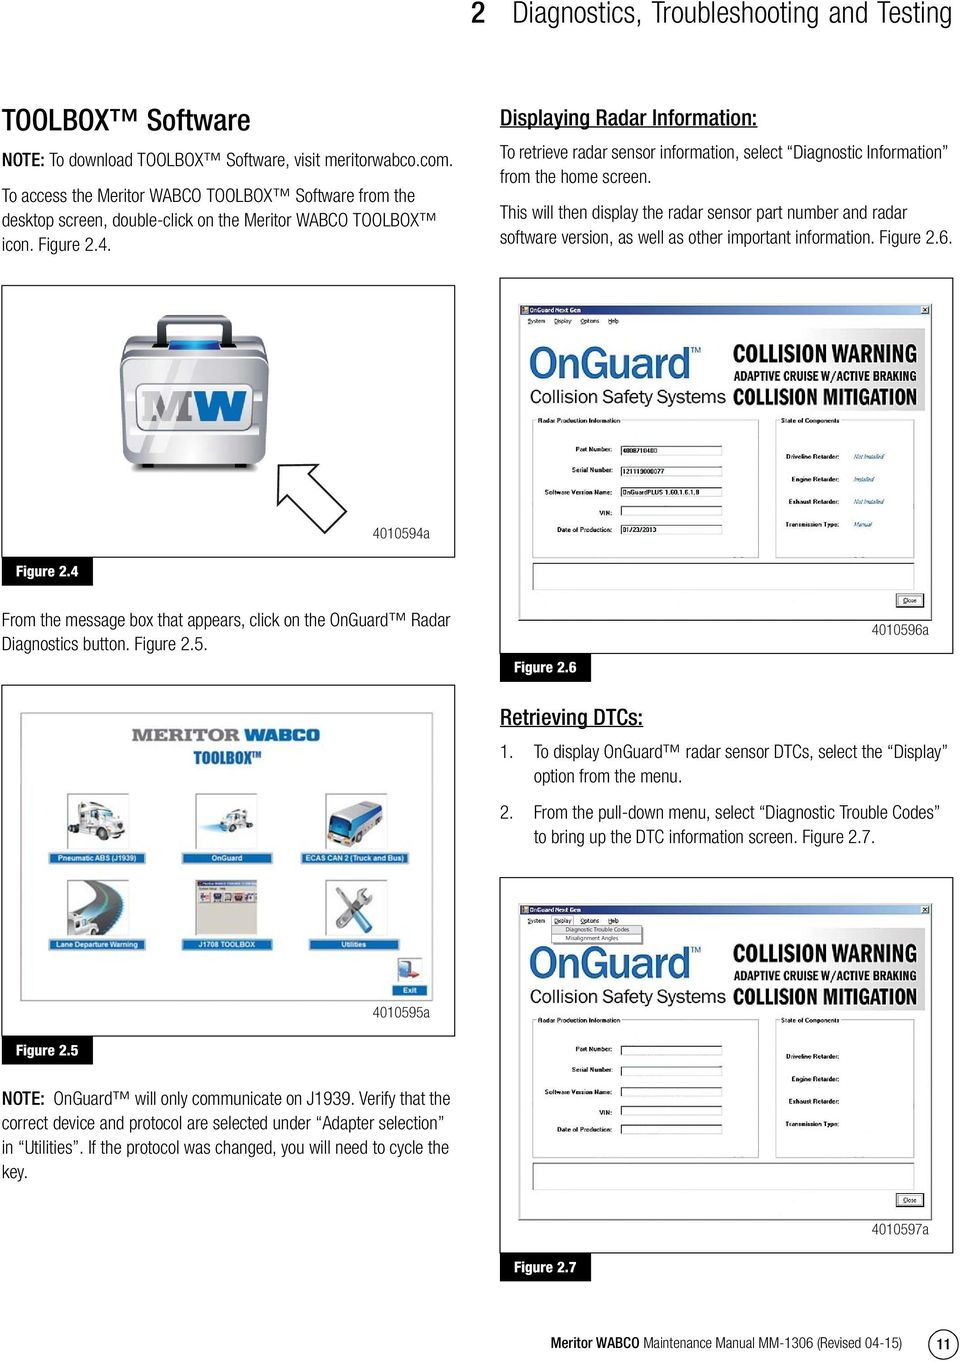 OnGuard Collision Mitigation System - PDF